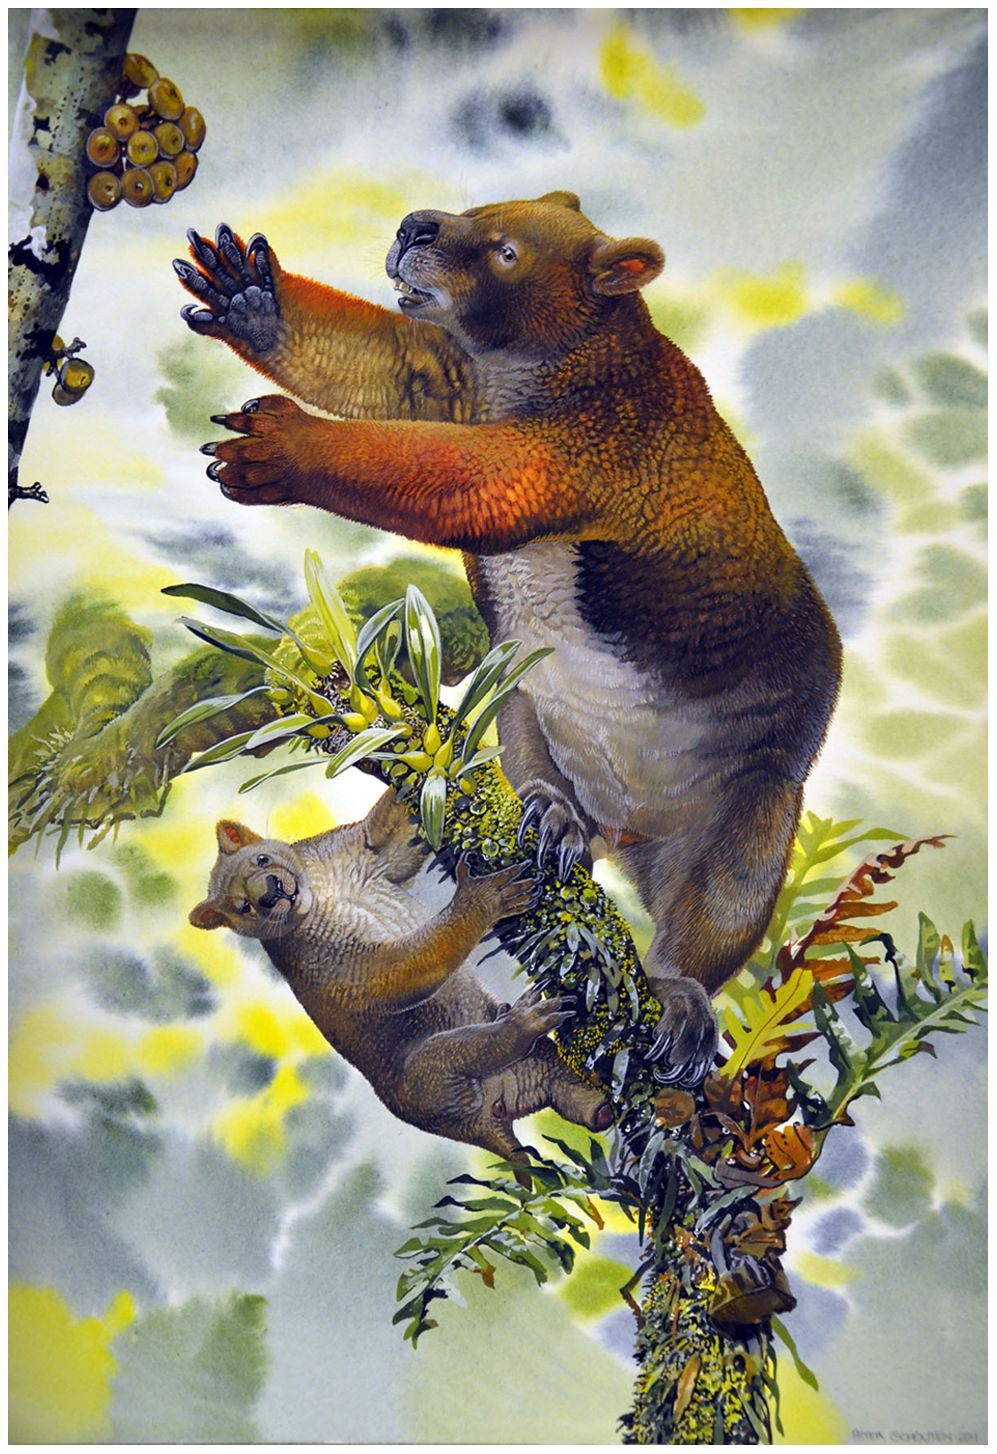 new research suggests massive marsupials lived in treetops